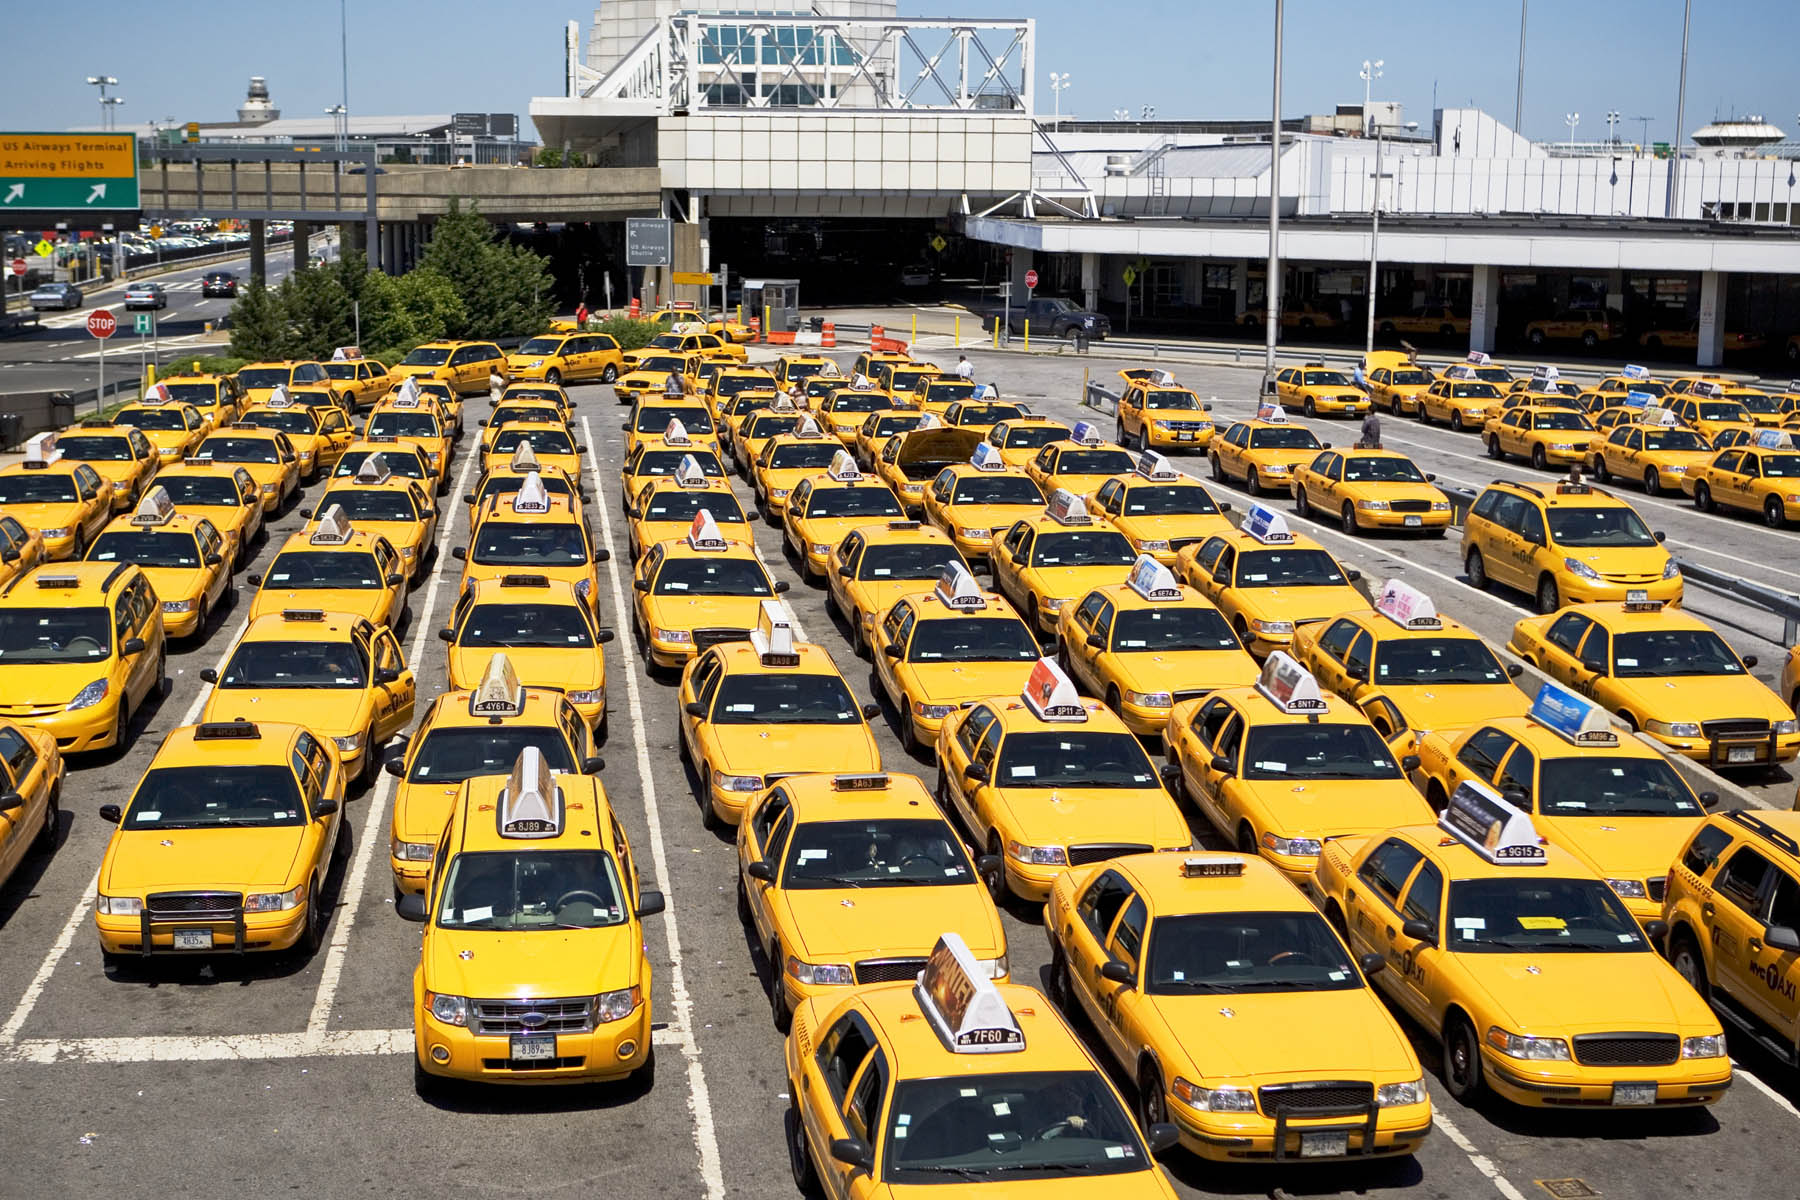 Taxis à l'aéroport JFK